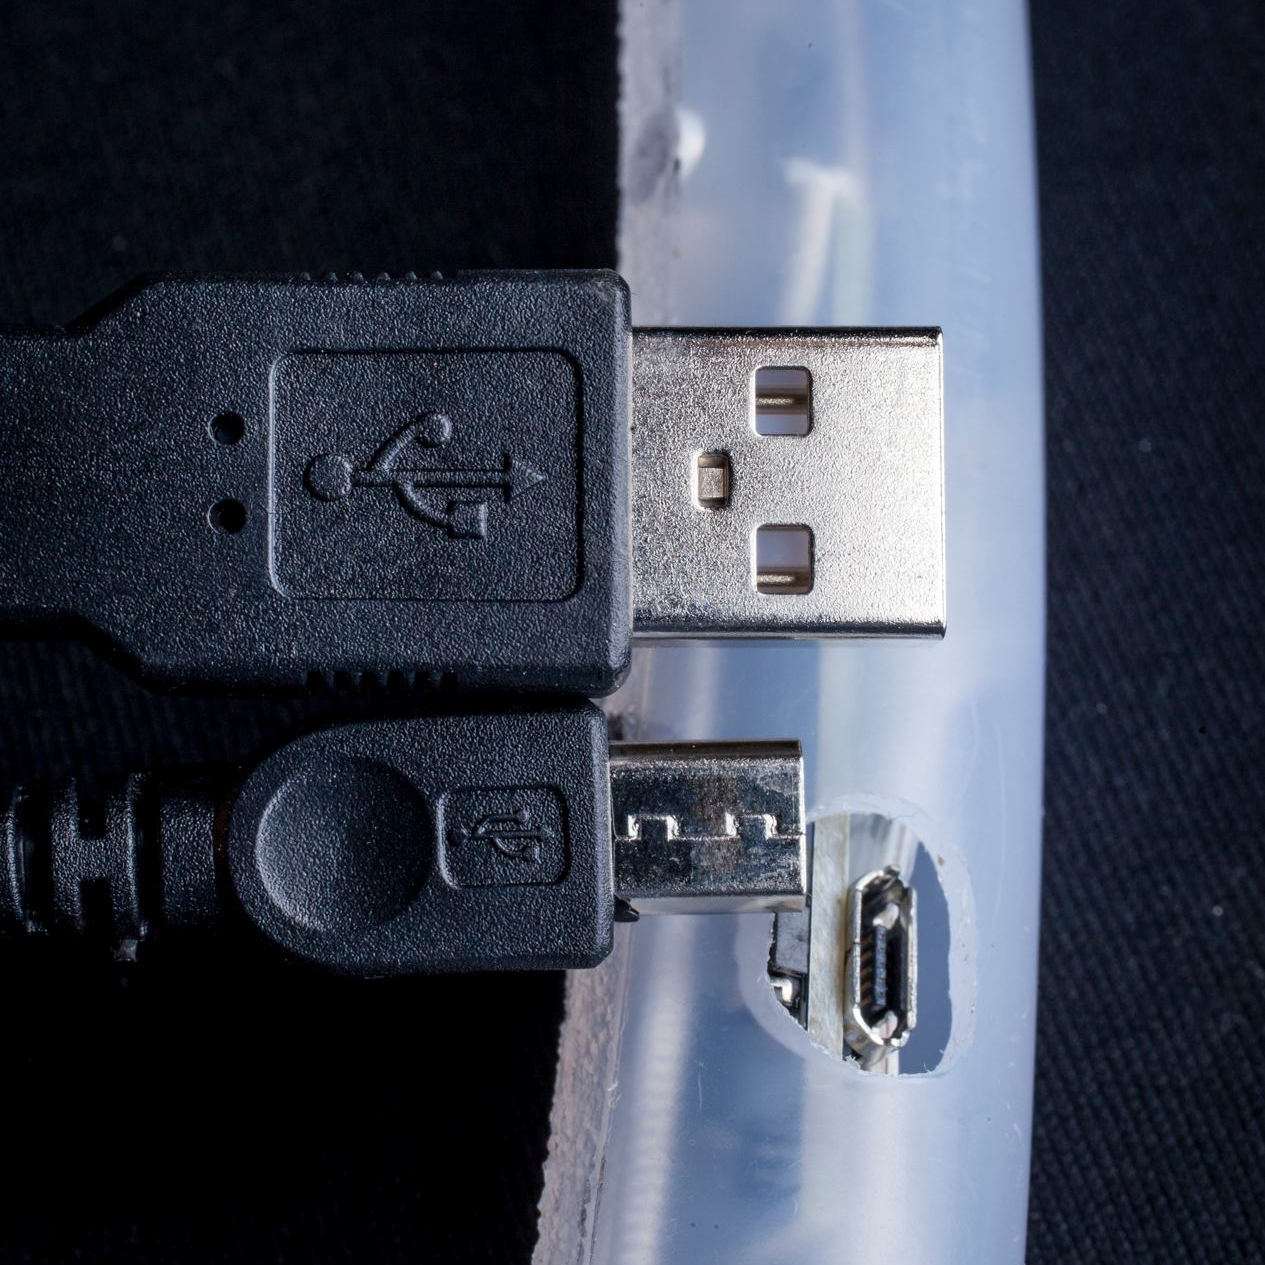 Recessed button and USB charge port